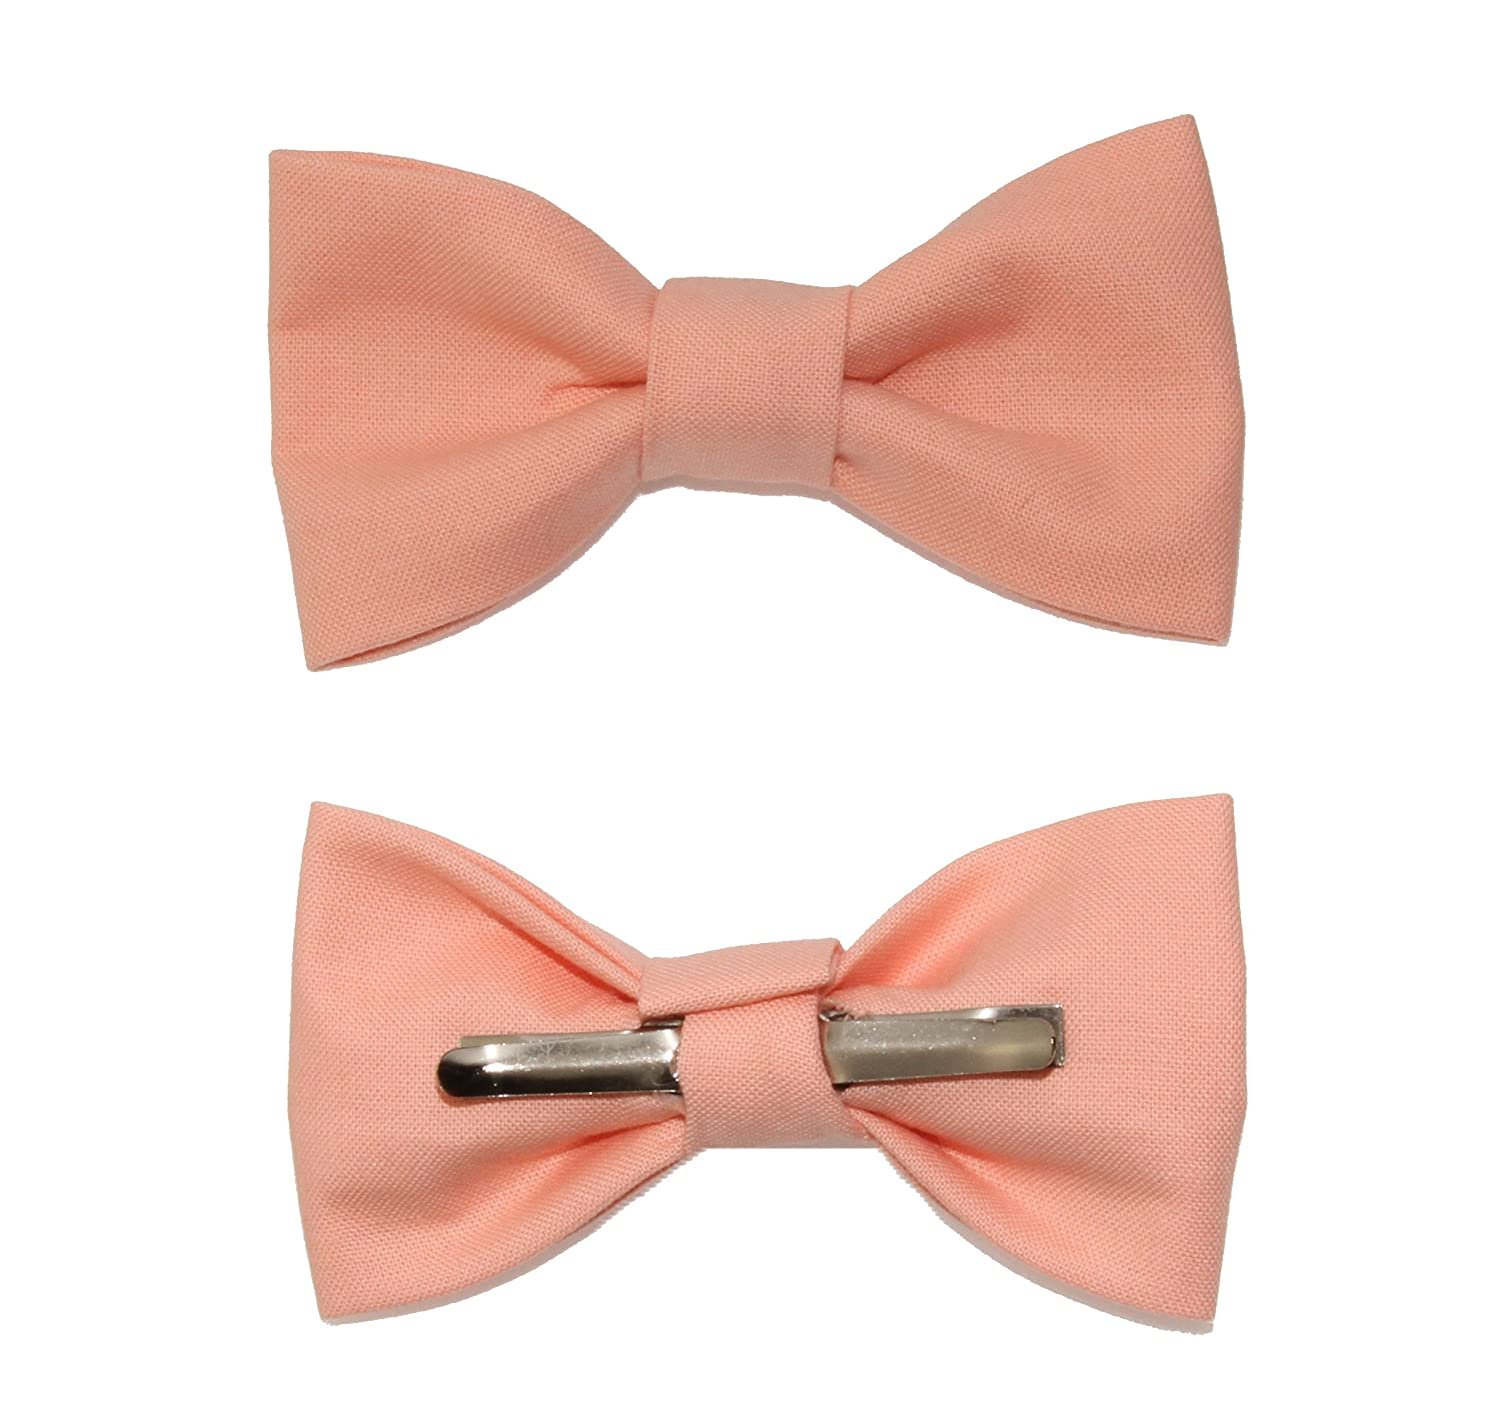 Toddler Boy 3T 4T Peach Clip On Cotton Bow Tie Bowtie by amy2004marie 110105